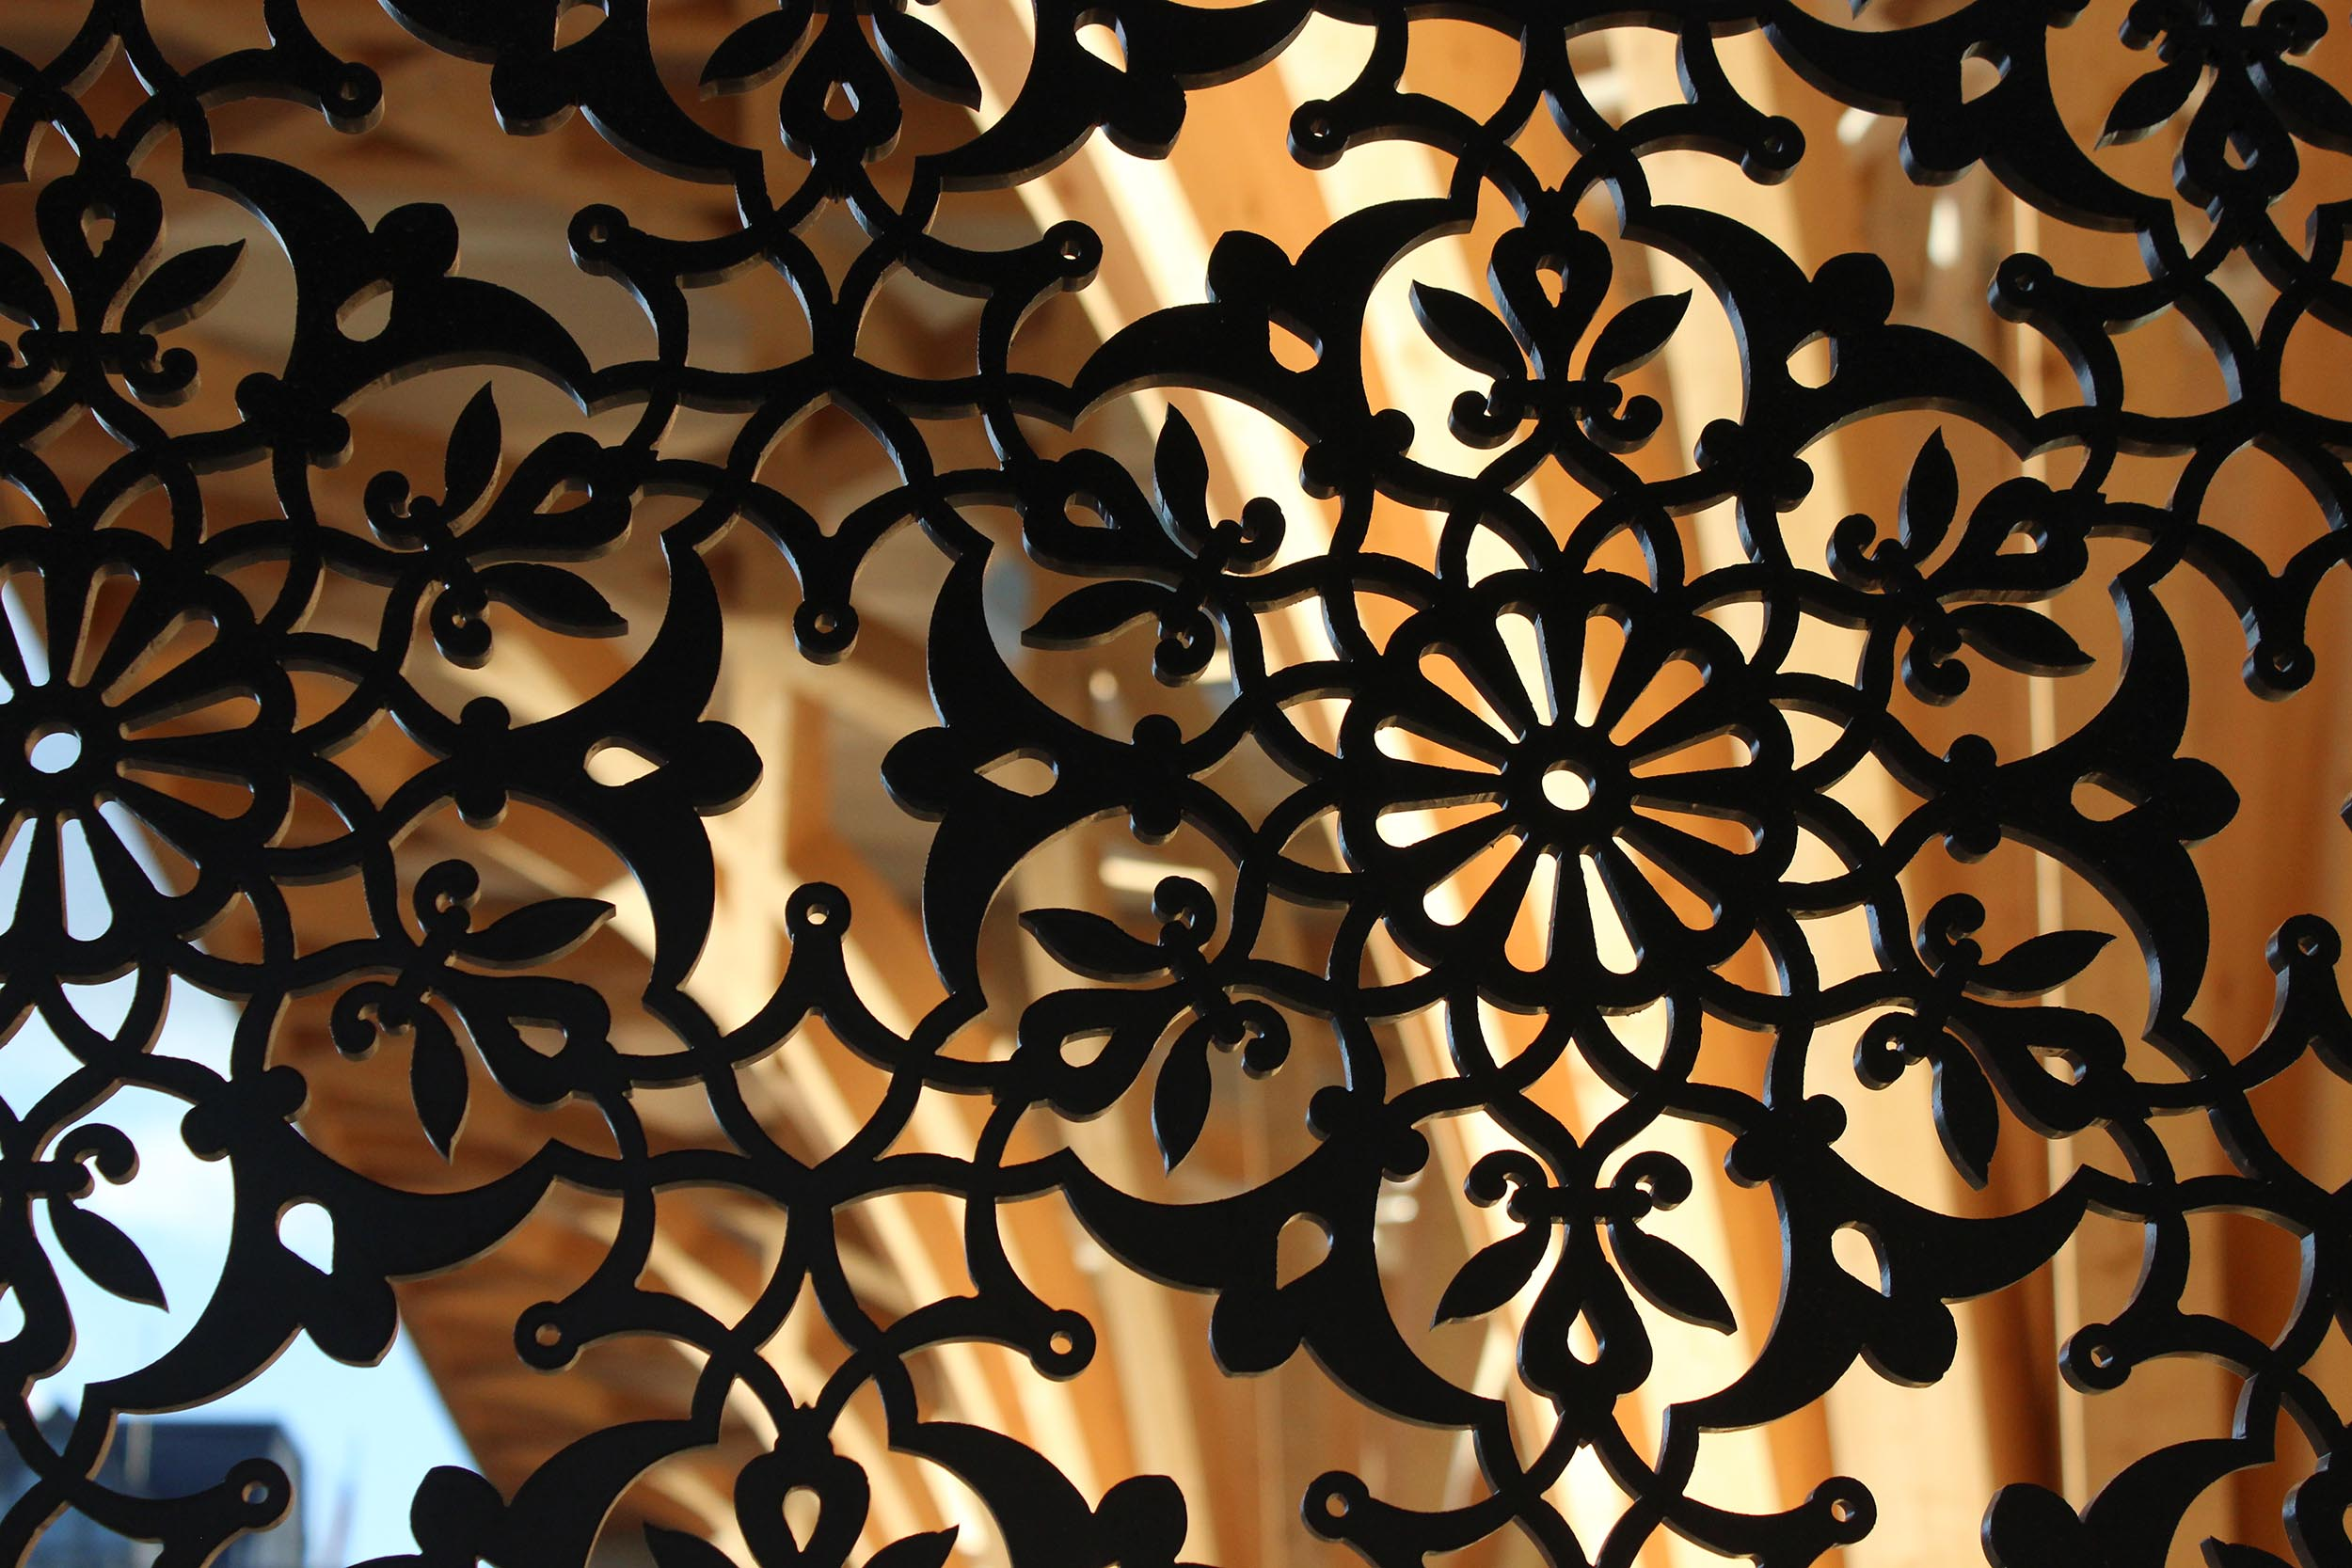 Cambridge Mosque Decorative screen in front portico by Marks Barfield Architects, photo by Matt Wingrove